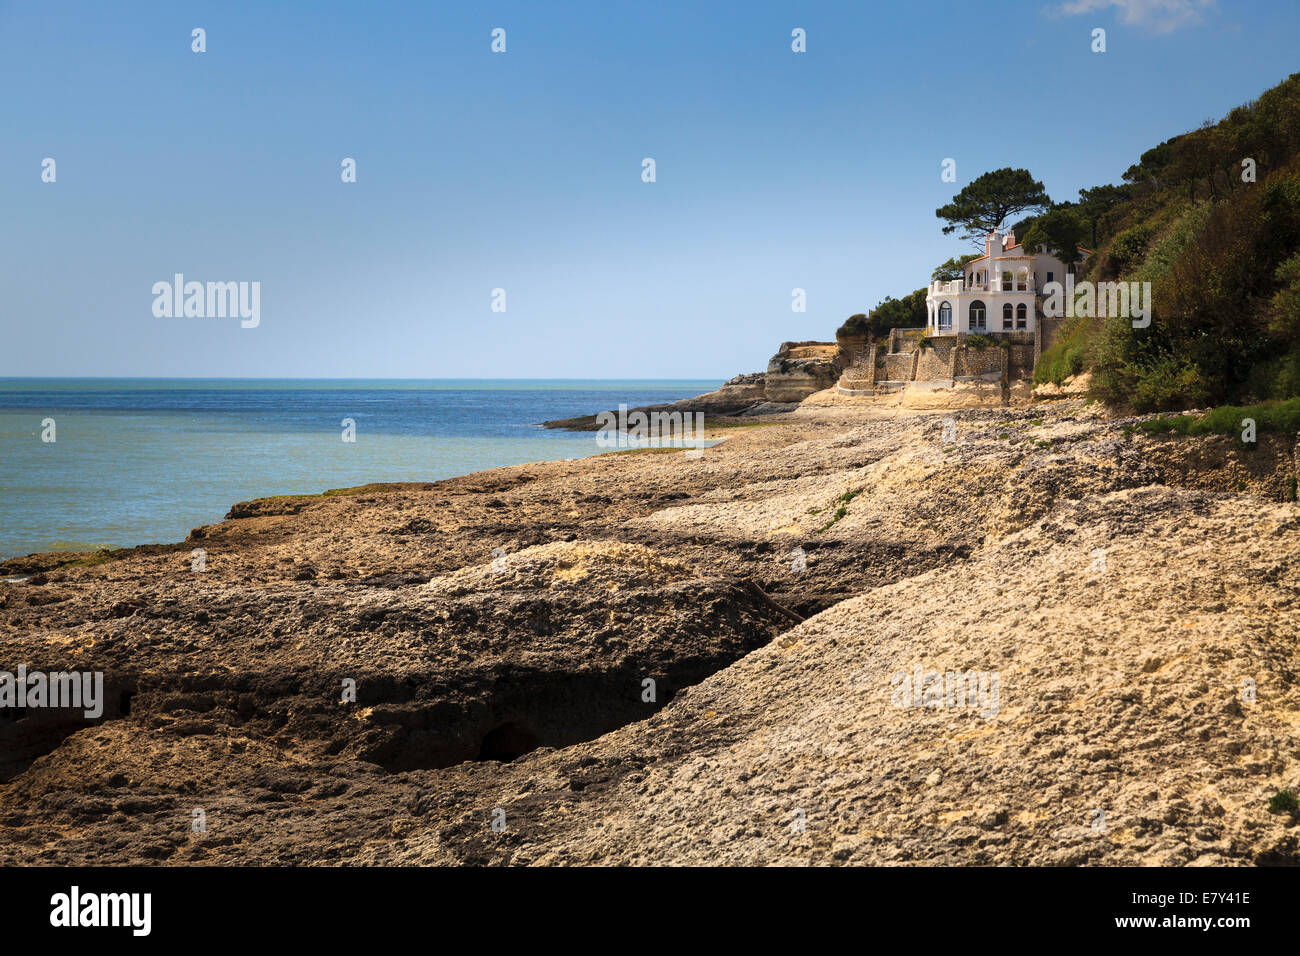 Single imposing house overlooks the calcareous rocks and sea of the Charente Maritime France. - Stock Image